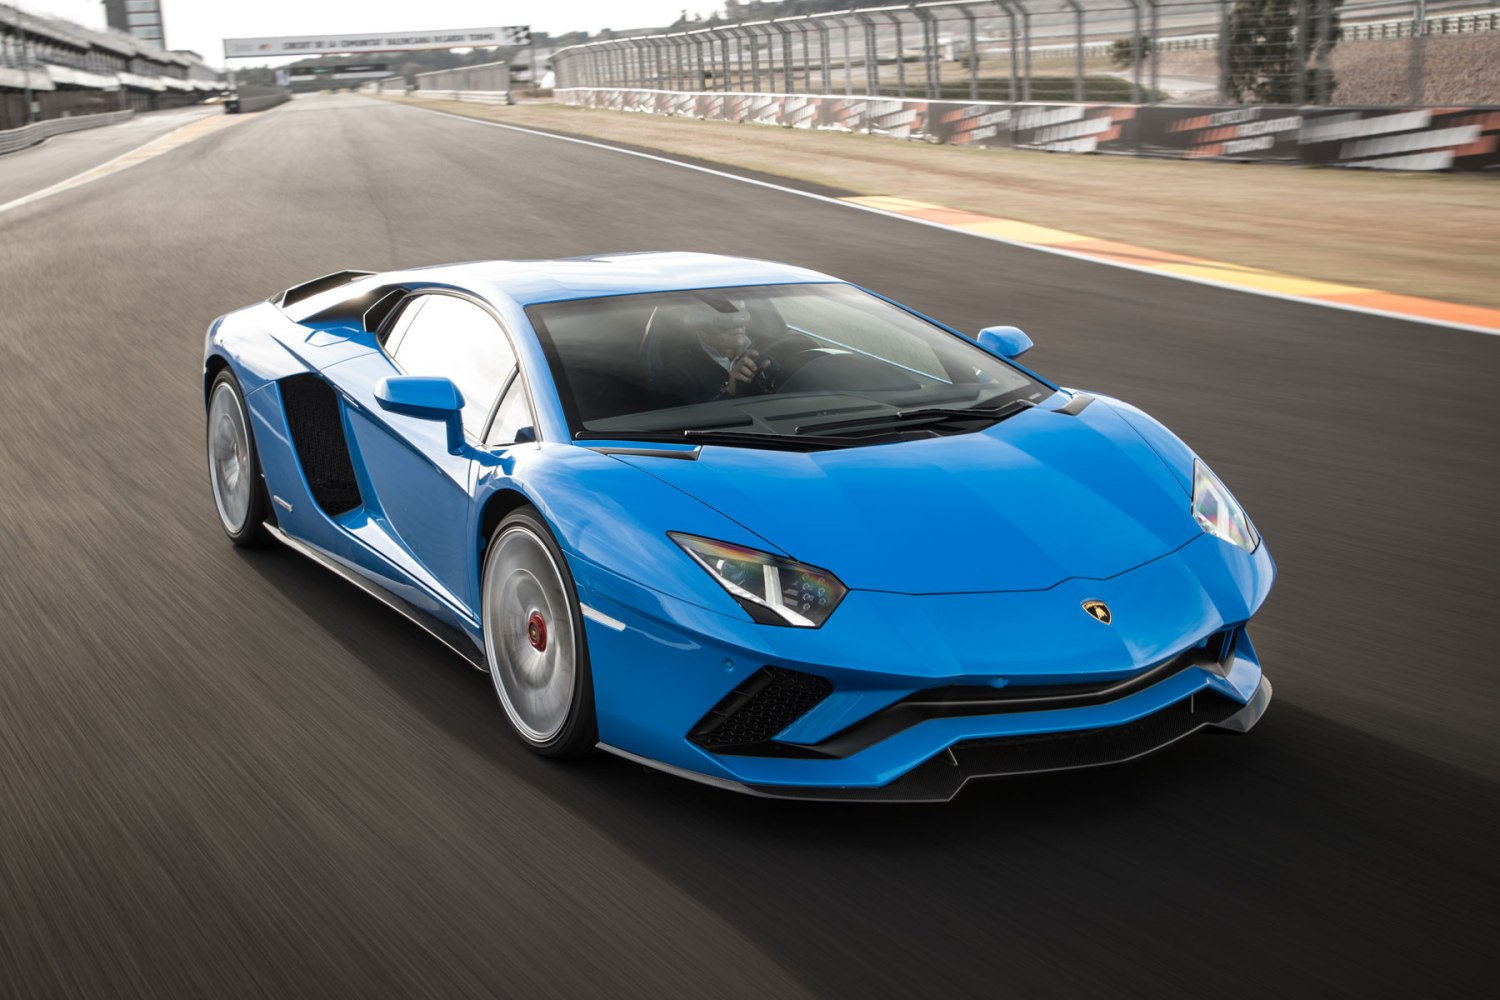 Lamborghini Aventador S Coupe – 2.9 seconds